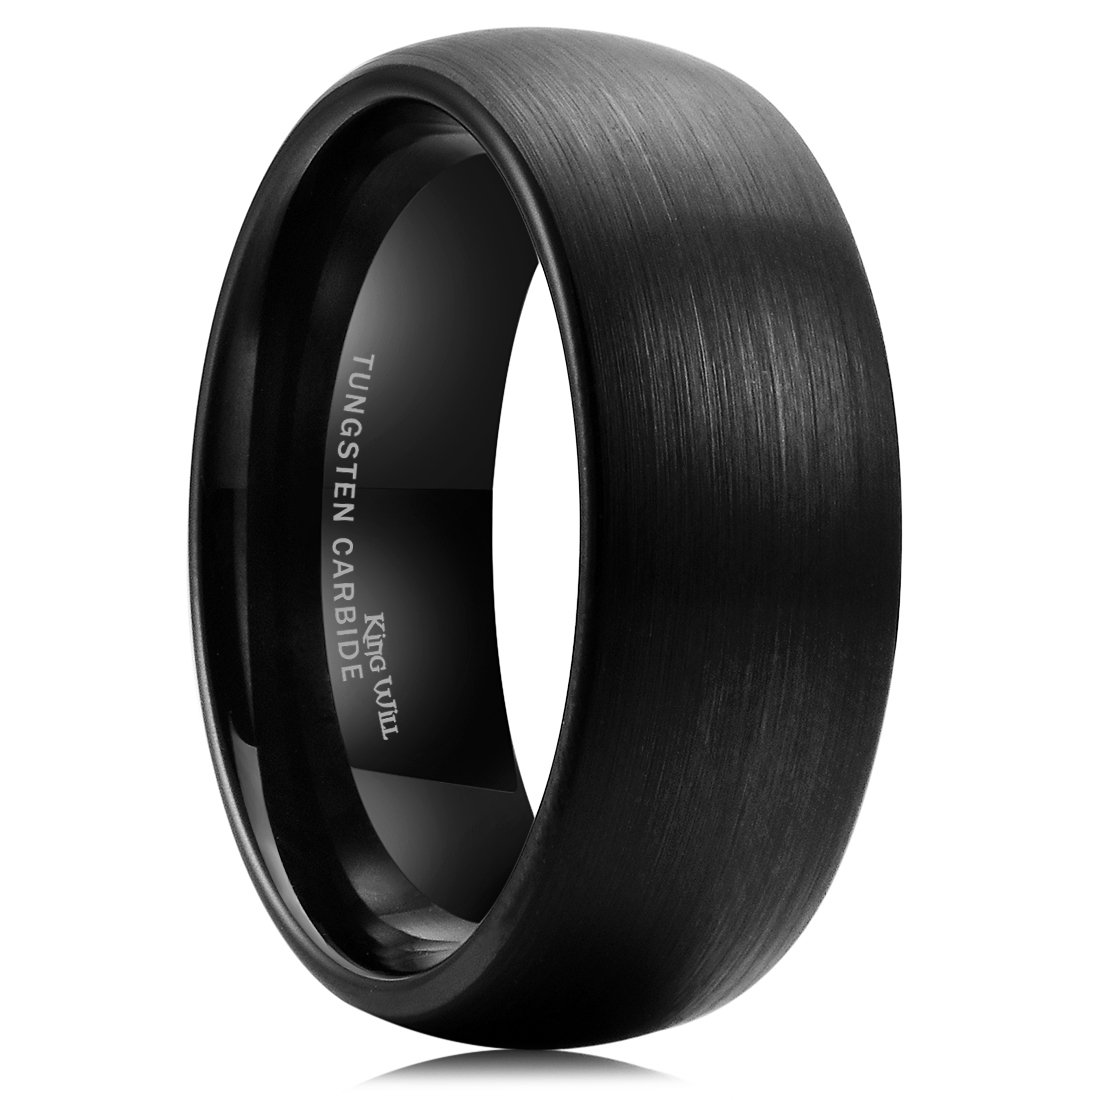 King Will TYRE 8mm Black Matte Finish Tungsten Carbide Ring Domed Engagement Wedding Band Comfort Fit R030